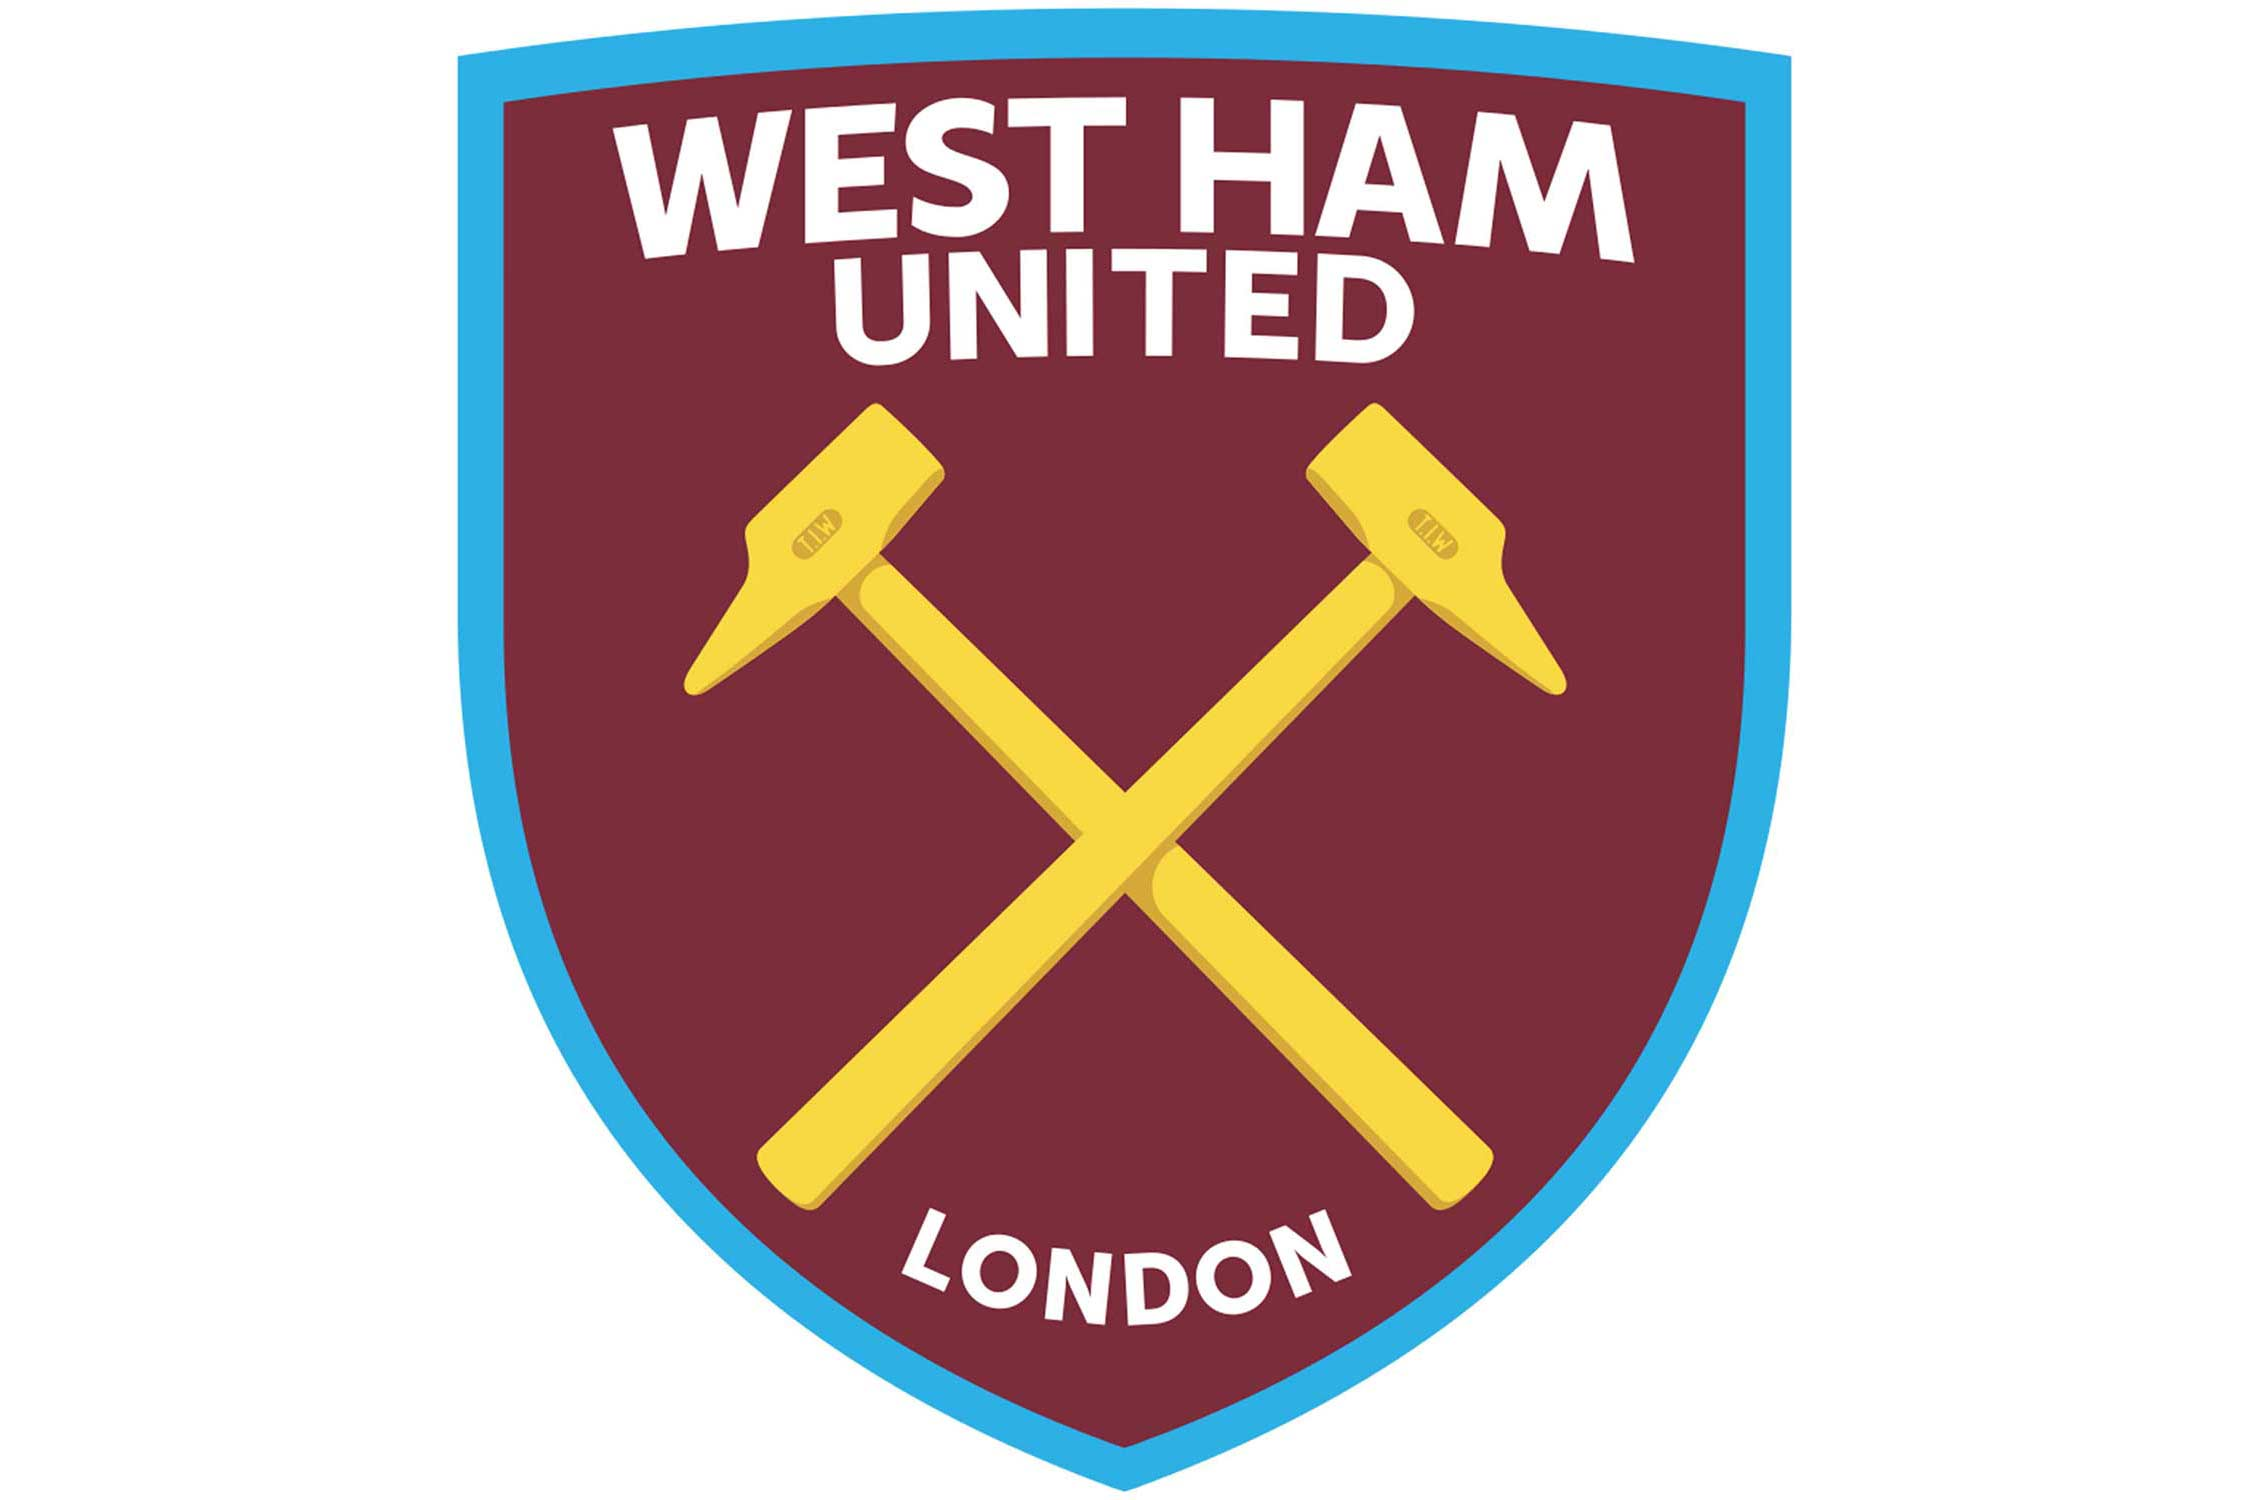 Introduced in 2016, the shape of the new West Ham United crest is modeled after the hull of the HMS Warrior, the first ironclad ship in the British navy, commissioned in 1861.